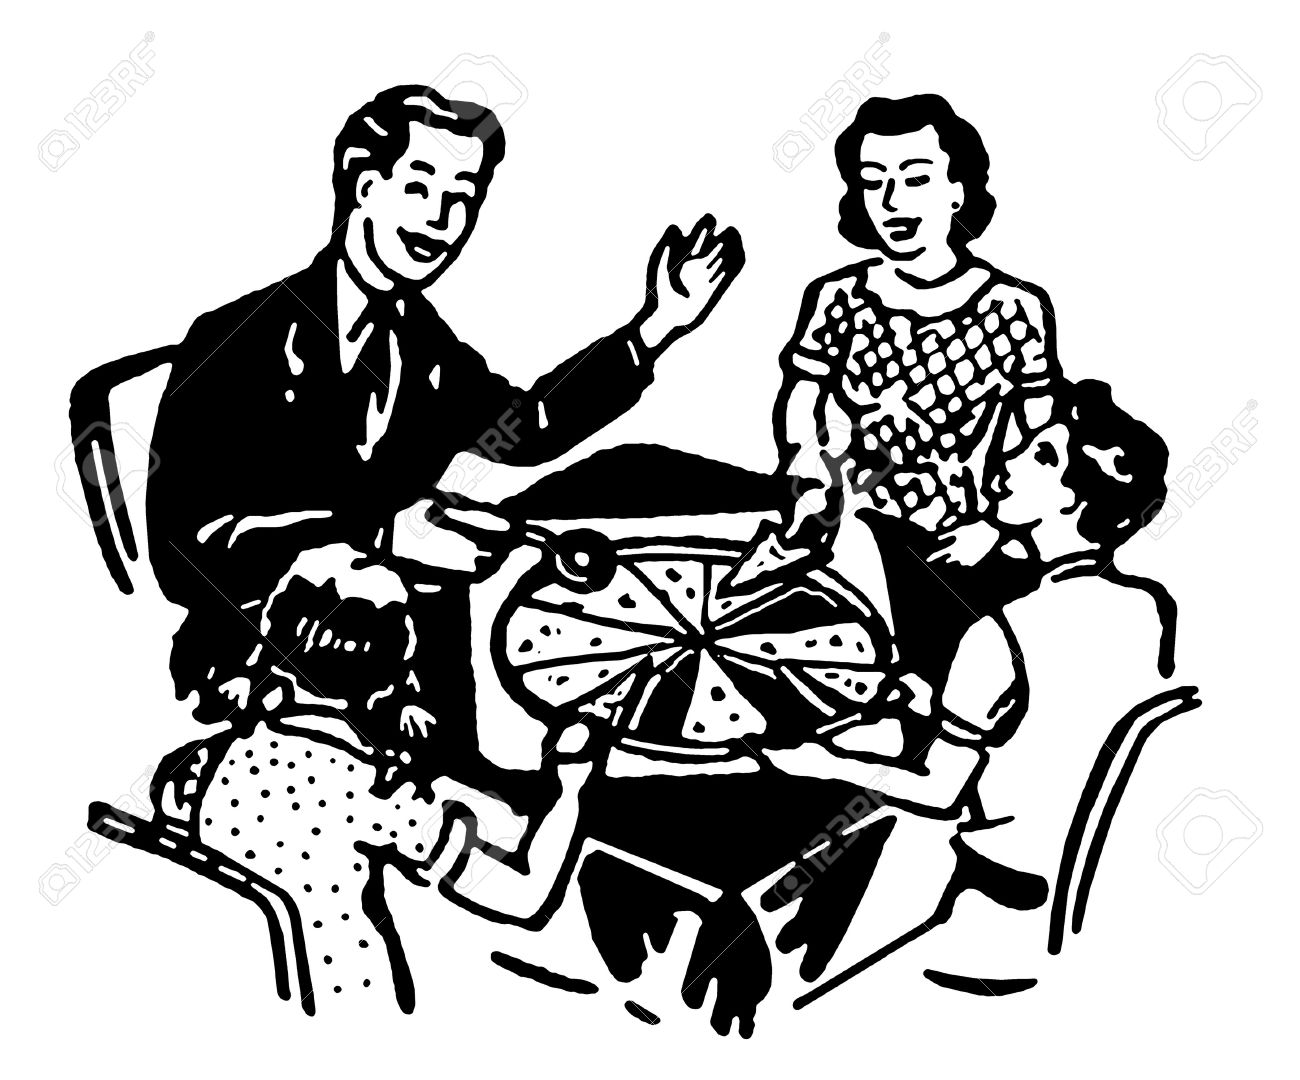 A Black And White Version Of Family Sharing Pizza Together Stock Photo